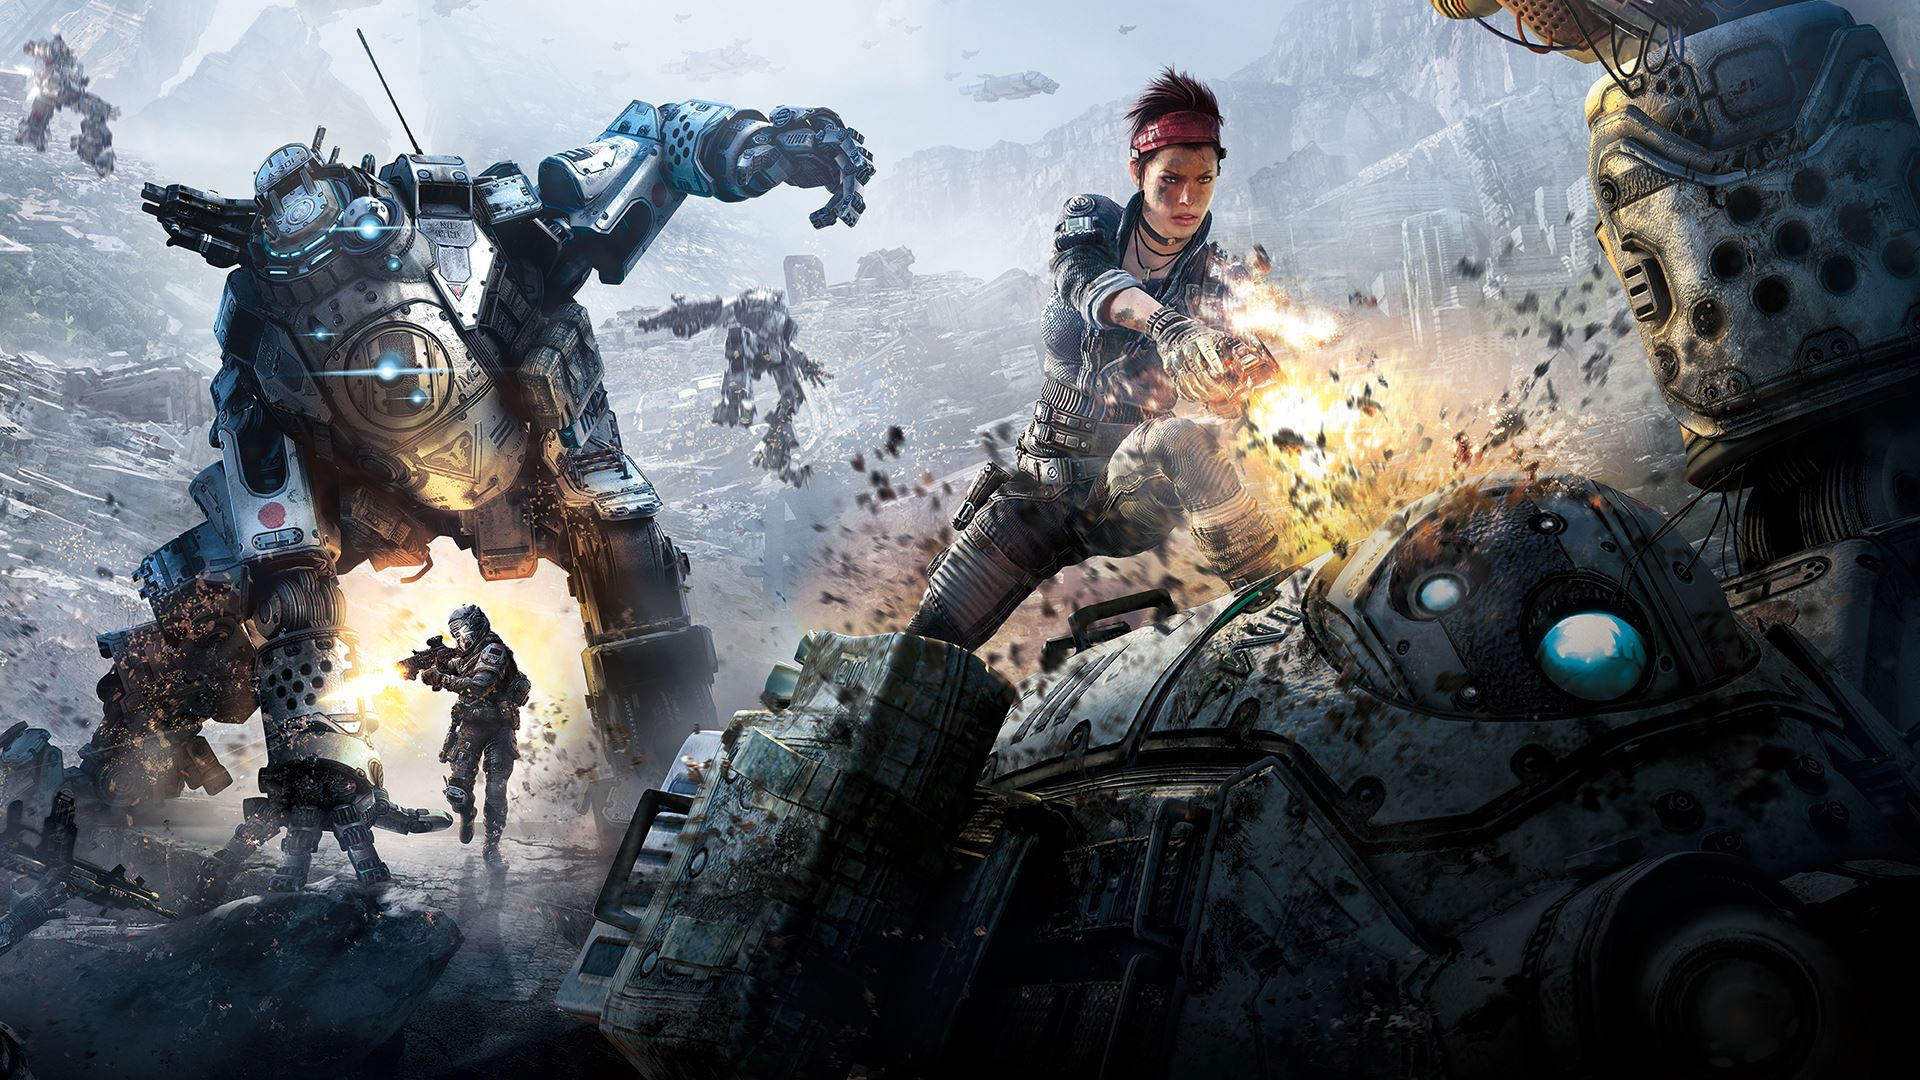 Titanfall 2 Wallpapers 20 Wallpapers Adorable Wallpapers